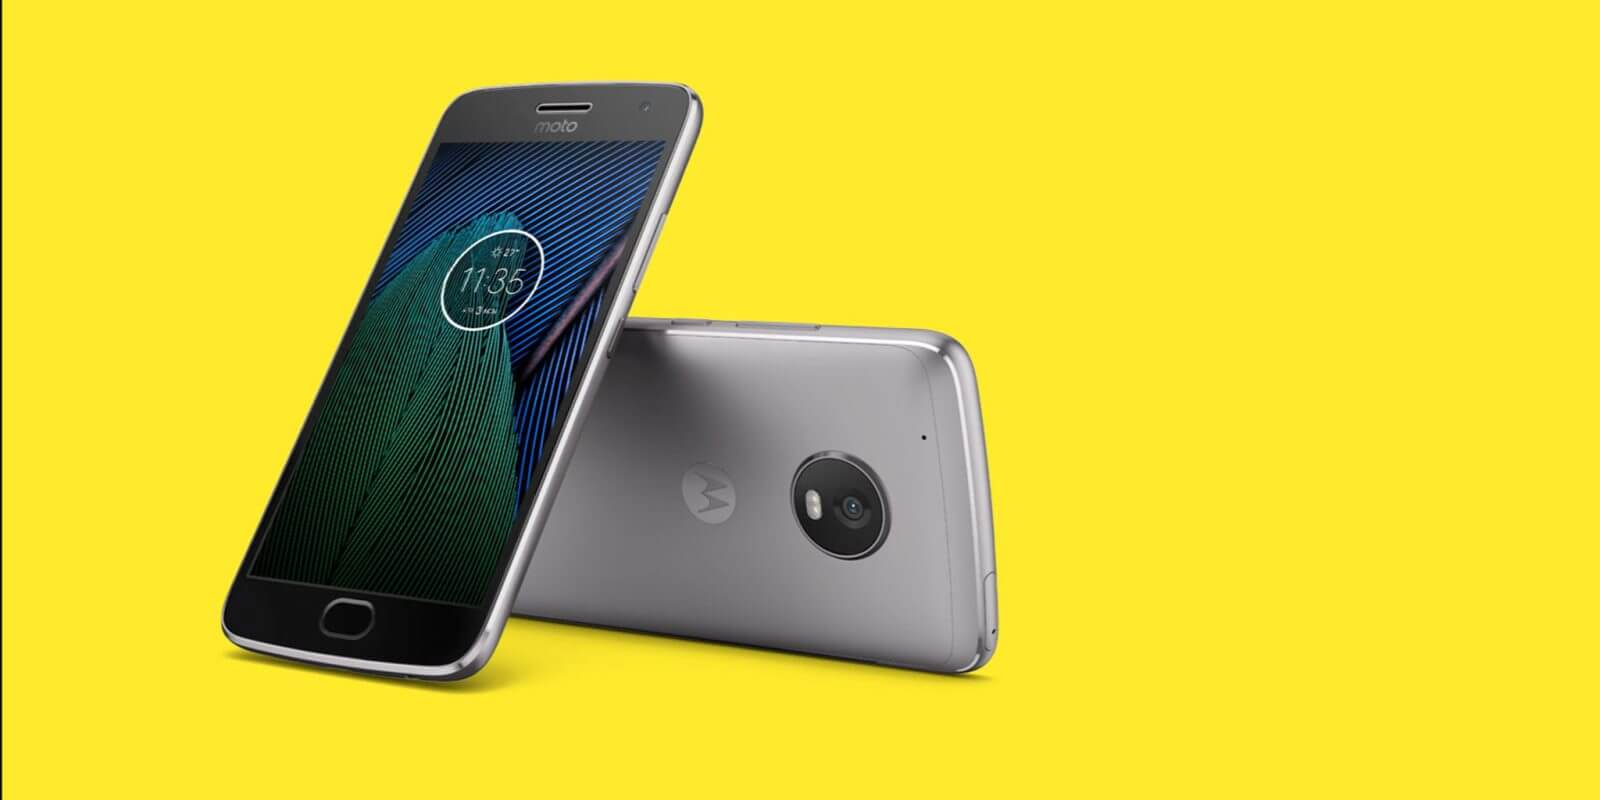 Moto g5 plus hero